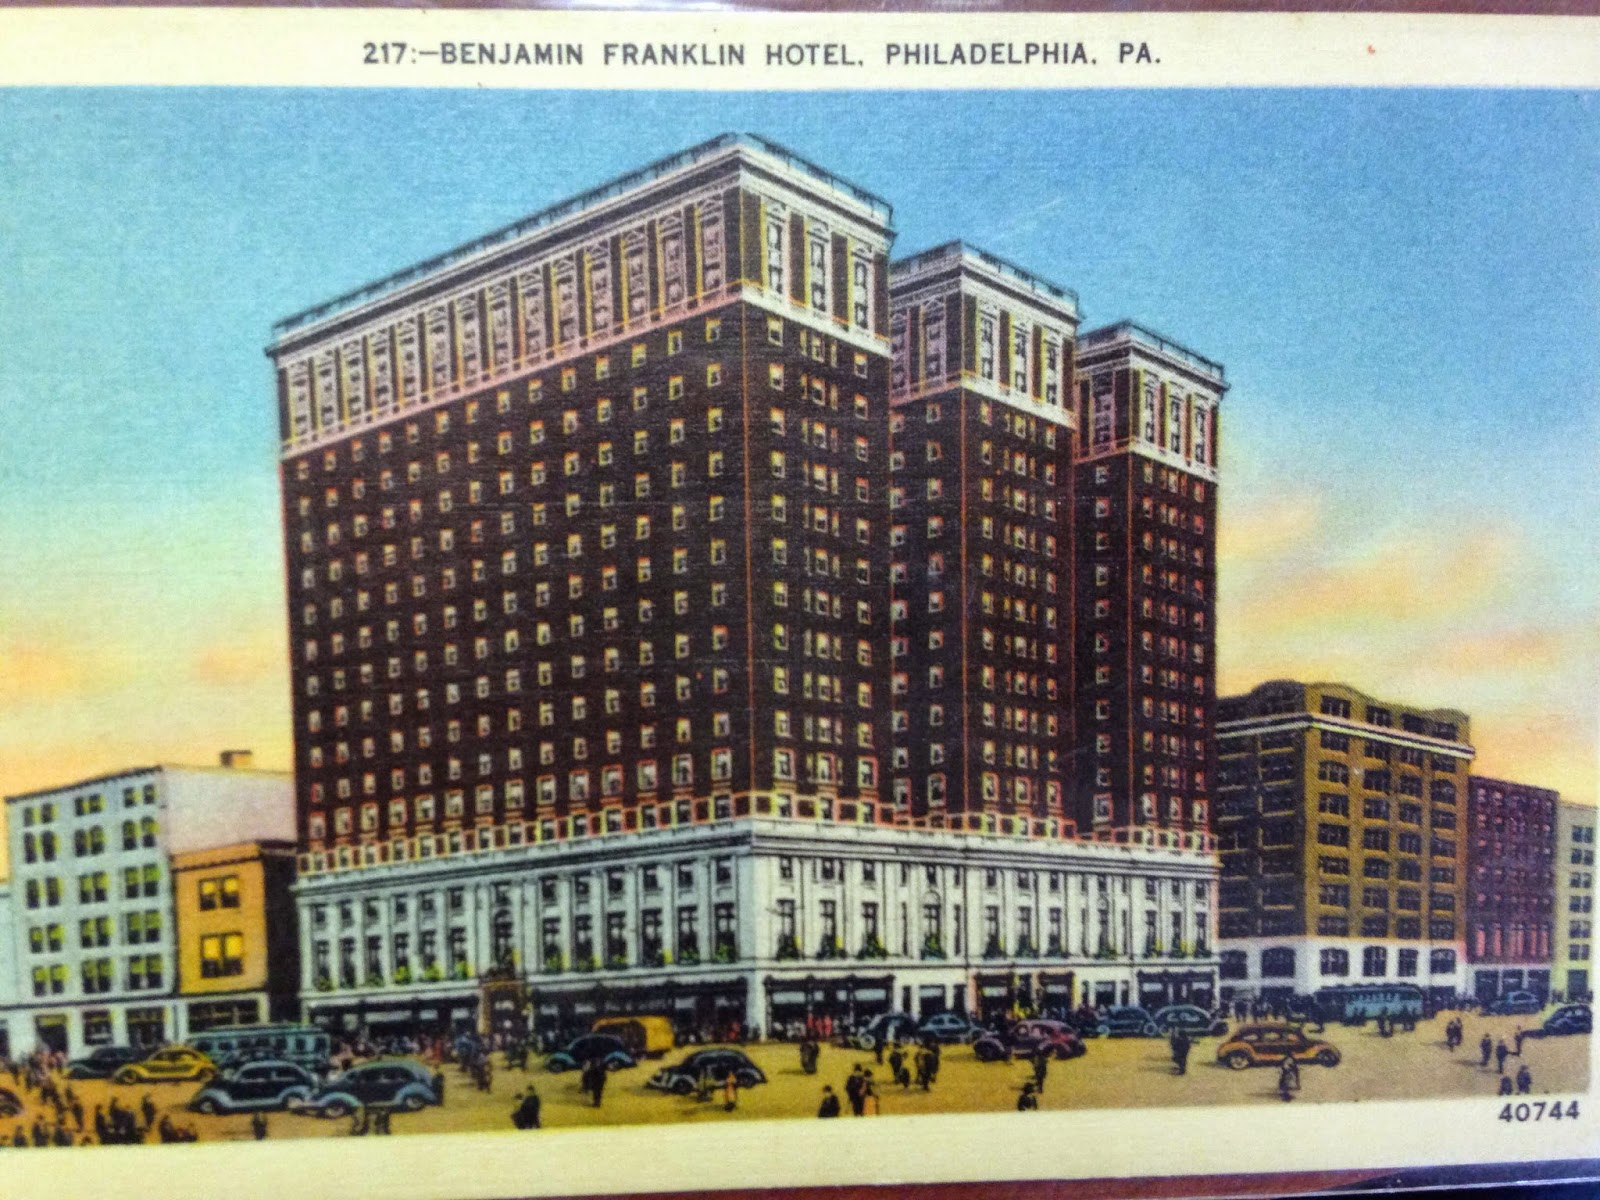 Benjamin Franklin Hotel Philadelphia Pa Postcard Interesting